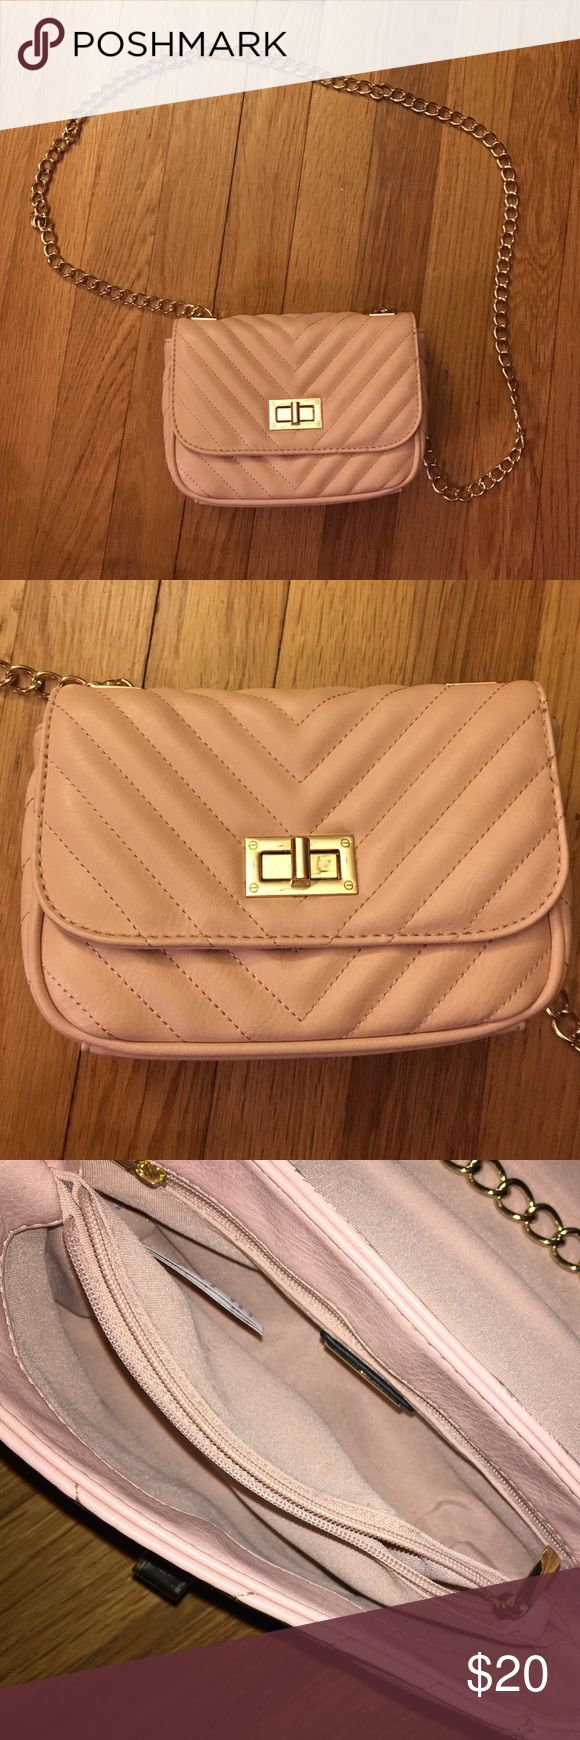 Aldo Crossover Purse I love this ballet pink purse. It's small but has a bunch of storage space. It's great for everyday use. I used it once, it's in great condition. Aldo Bags Crossbody Bags